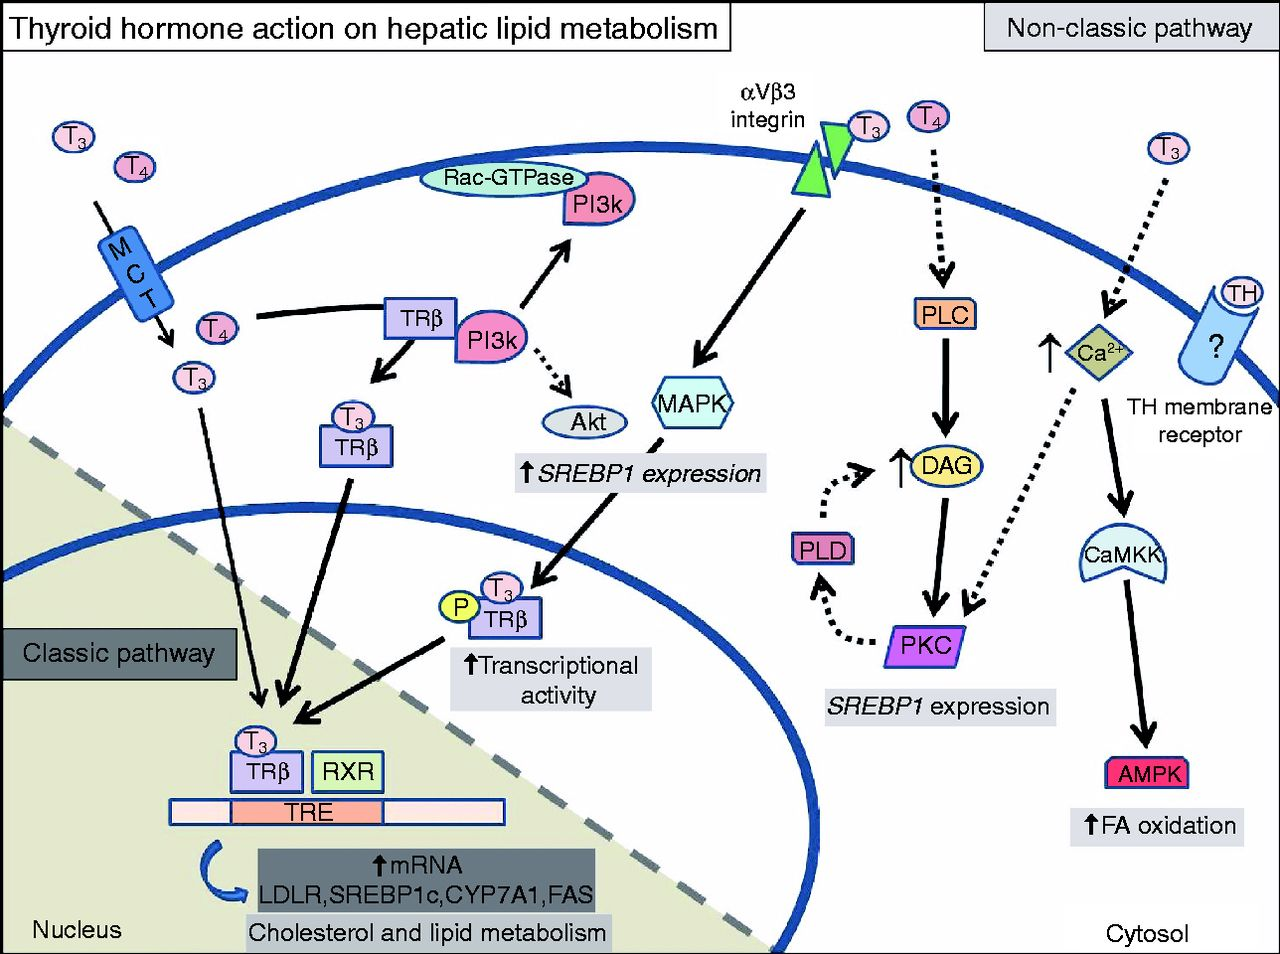 Non Classic Thyroid Hormone Signalling Involved In Hepatic Lipid